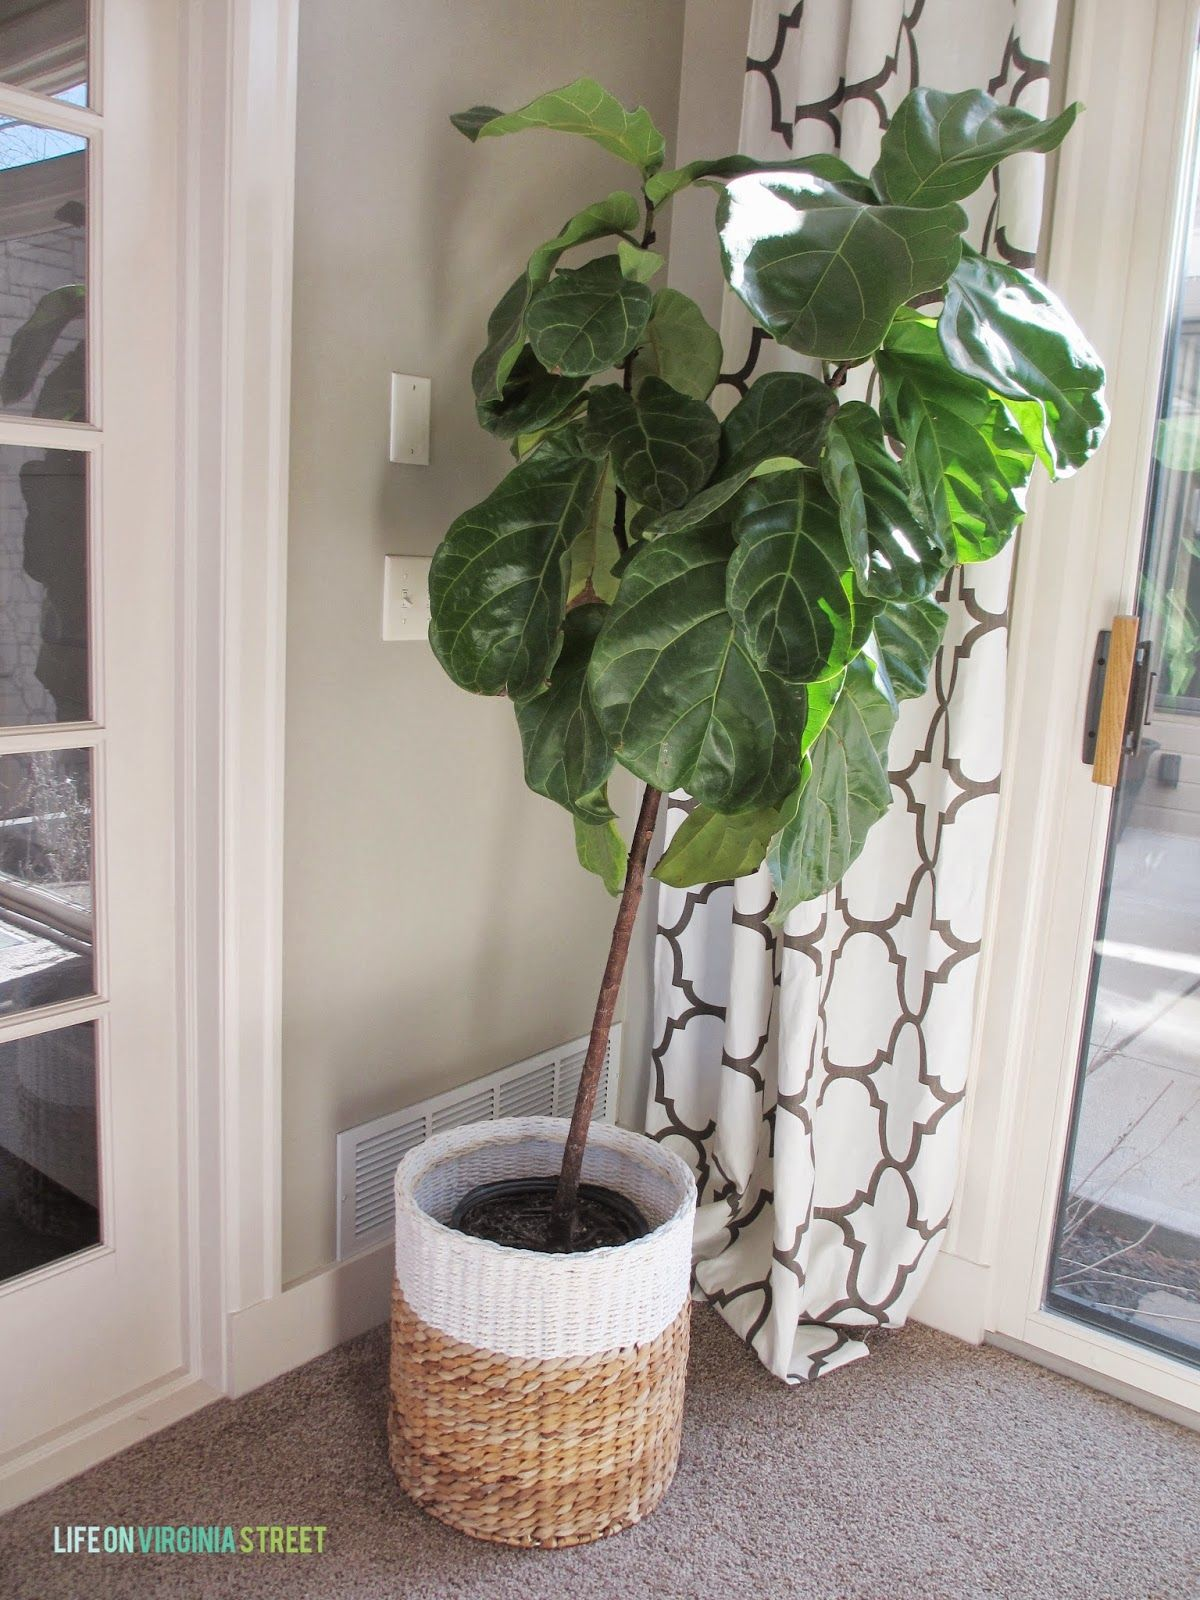 Home decor plants ideas  The brown seems to work its way up the leaf  Learn more by